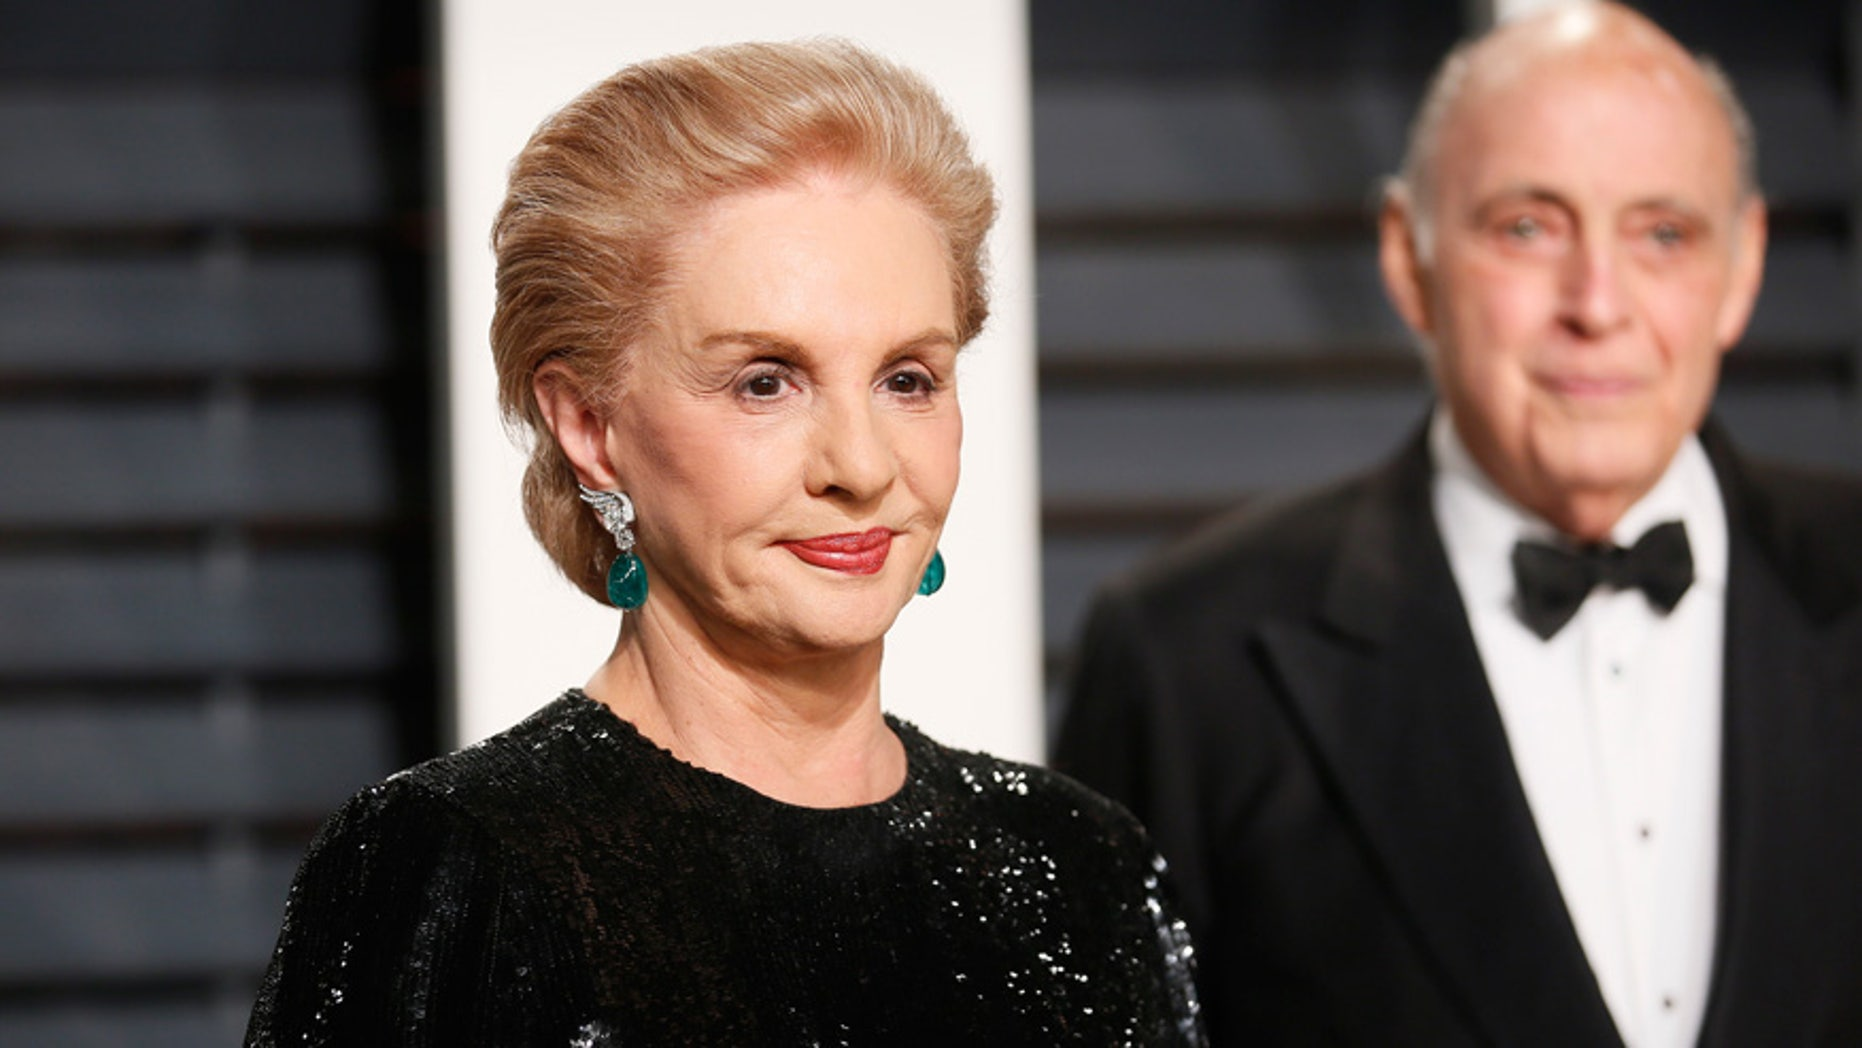 Designer Carolina Herrera at the Oscars Vanity Fair Party in Beverly Hills, California February 2, 2017.